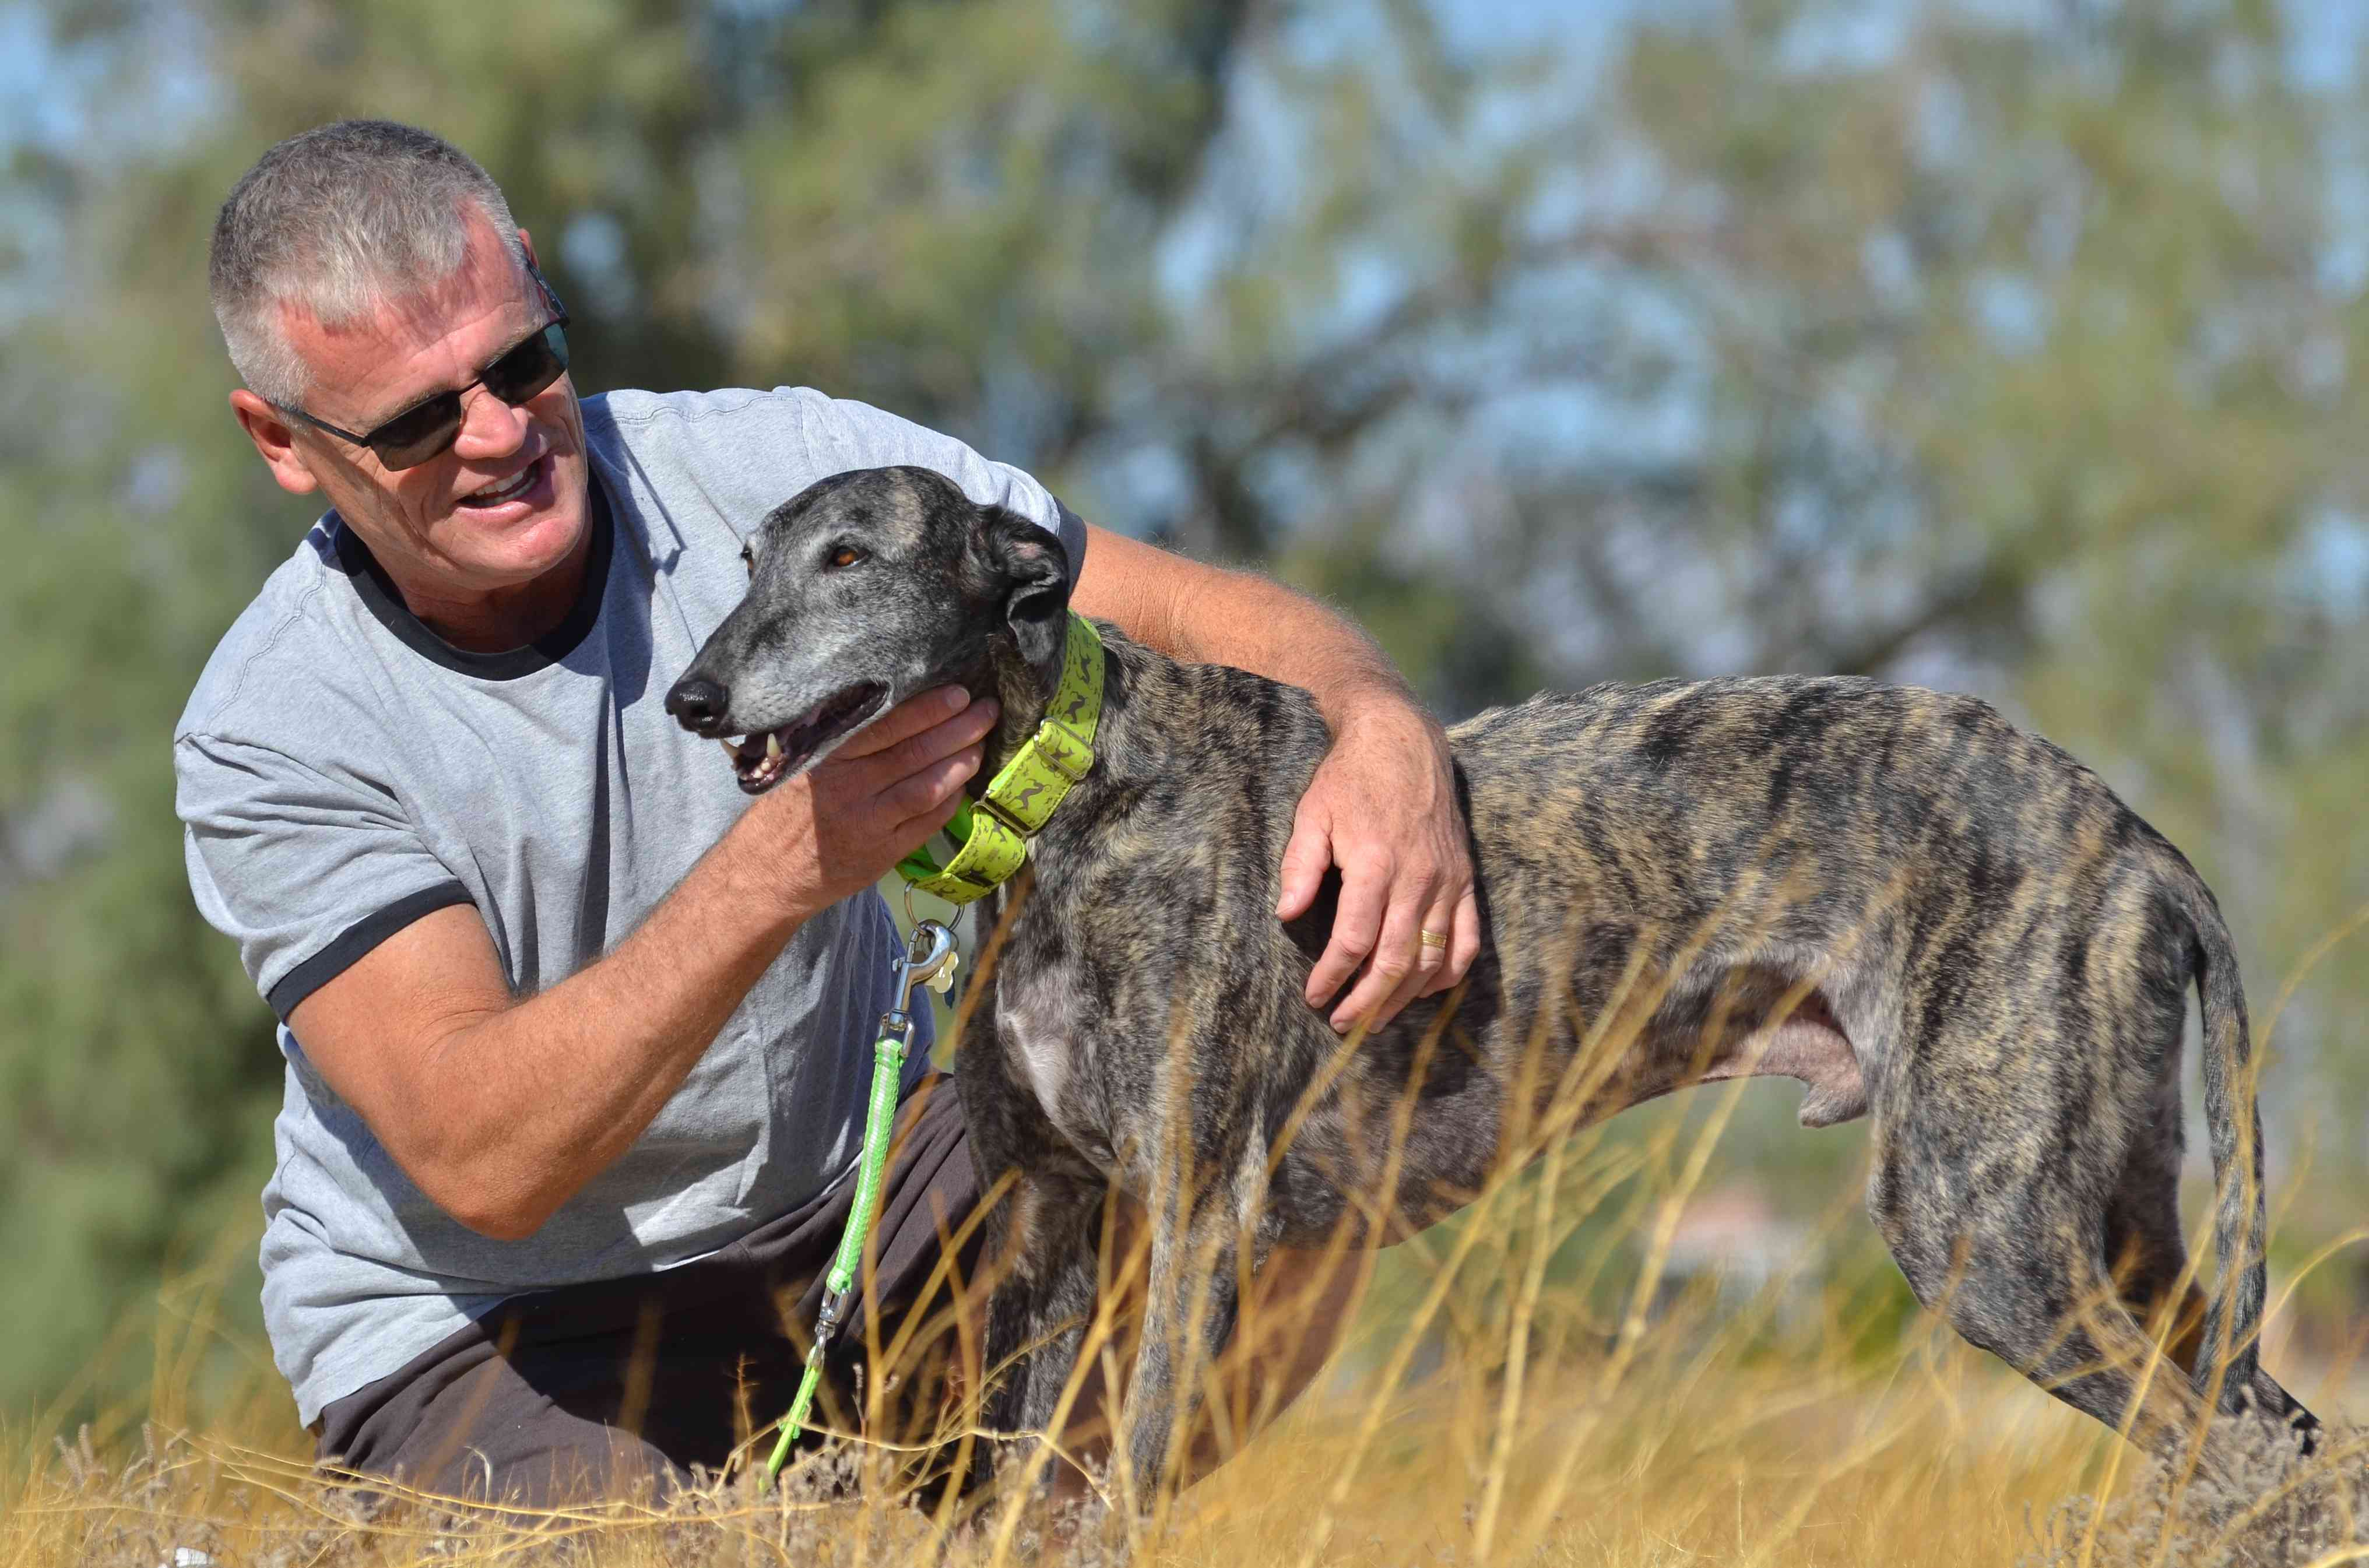 George Knott in a field with a galgo.